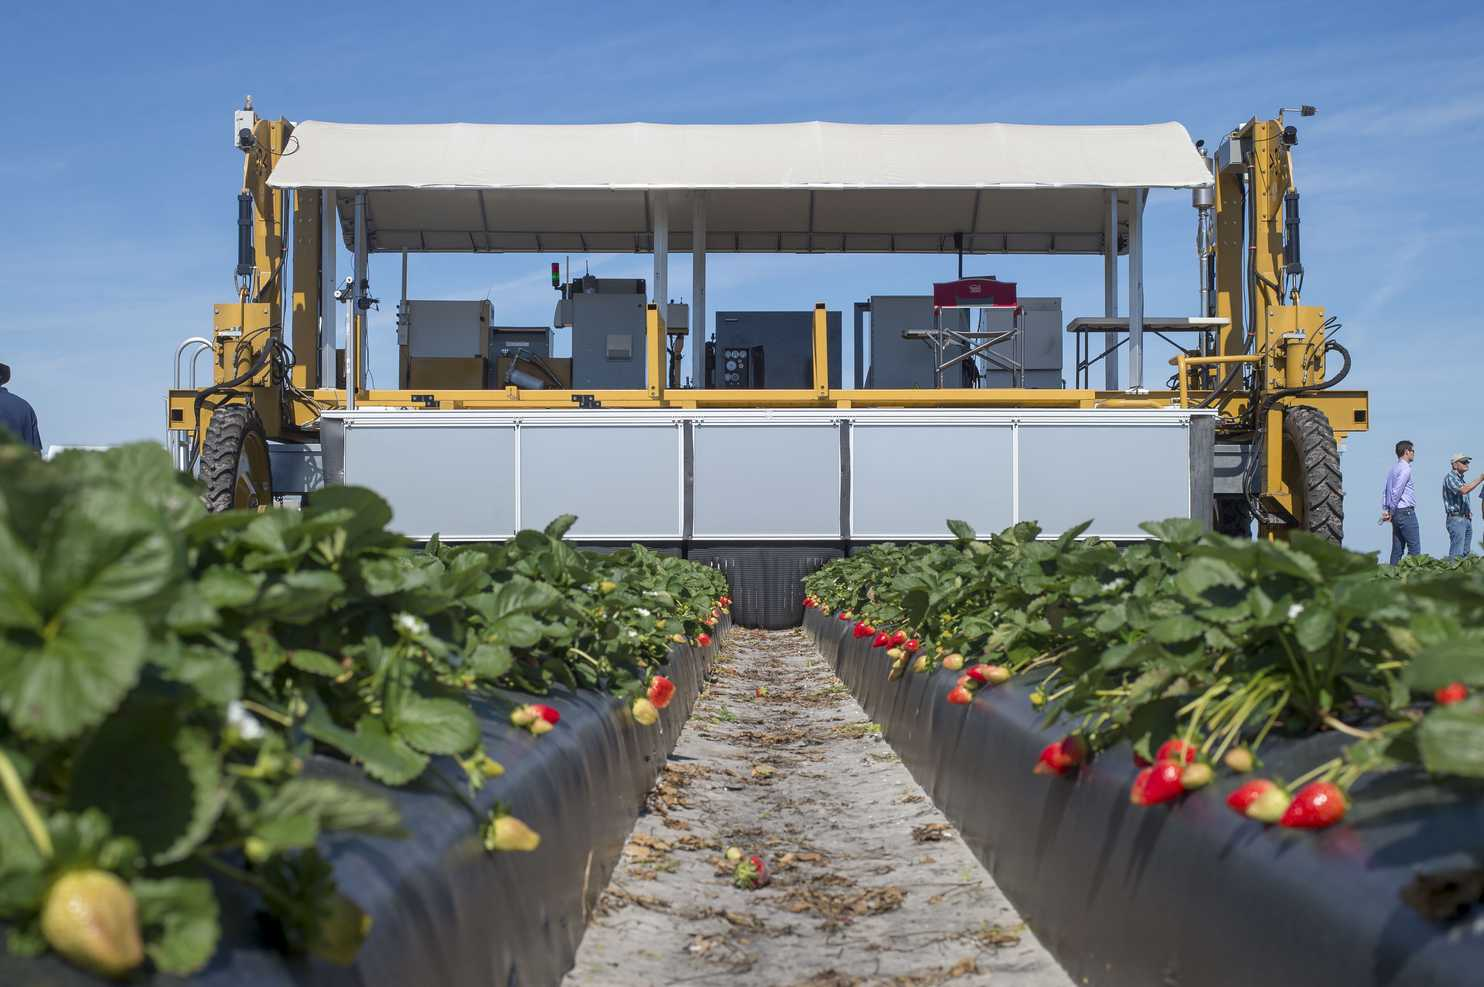 Robot aids farmers in picking strawberries.